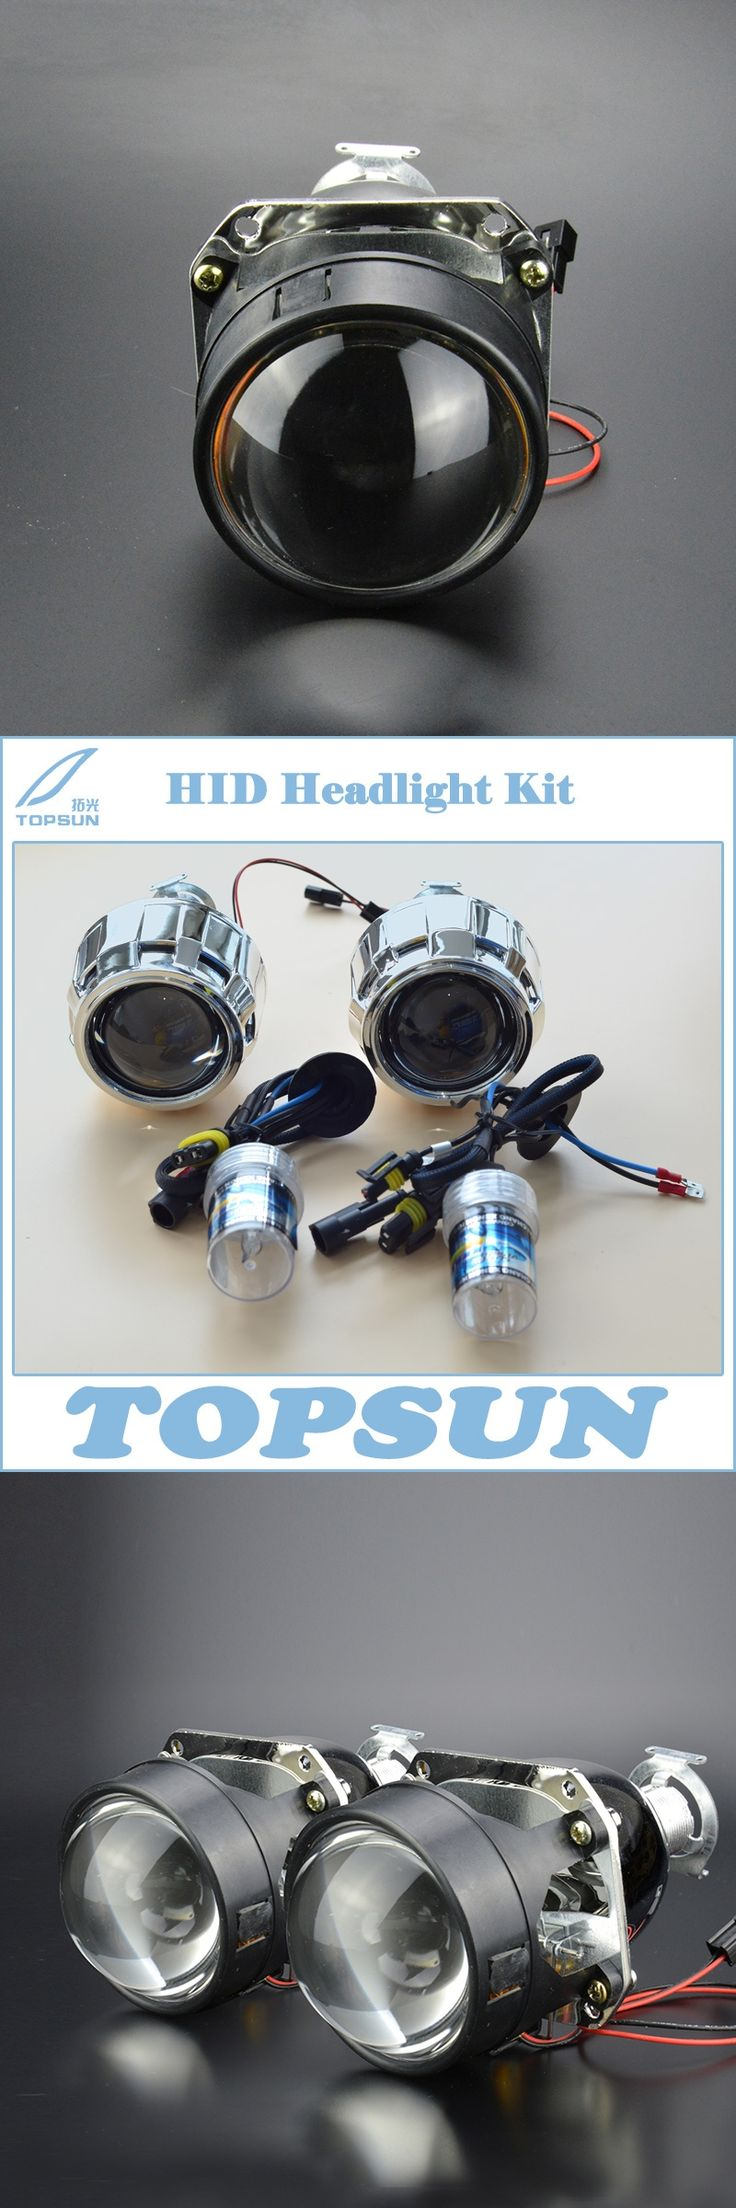 OEM Car Styling Retrofit Kit including 55W H1 HID Headlight  Lamp and WST 2.5 inch Projector Lens With Mini Shroud